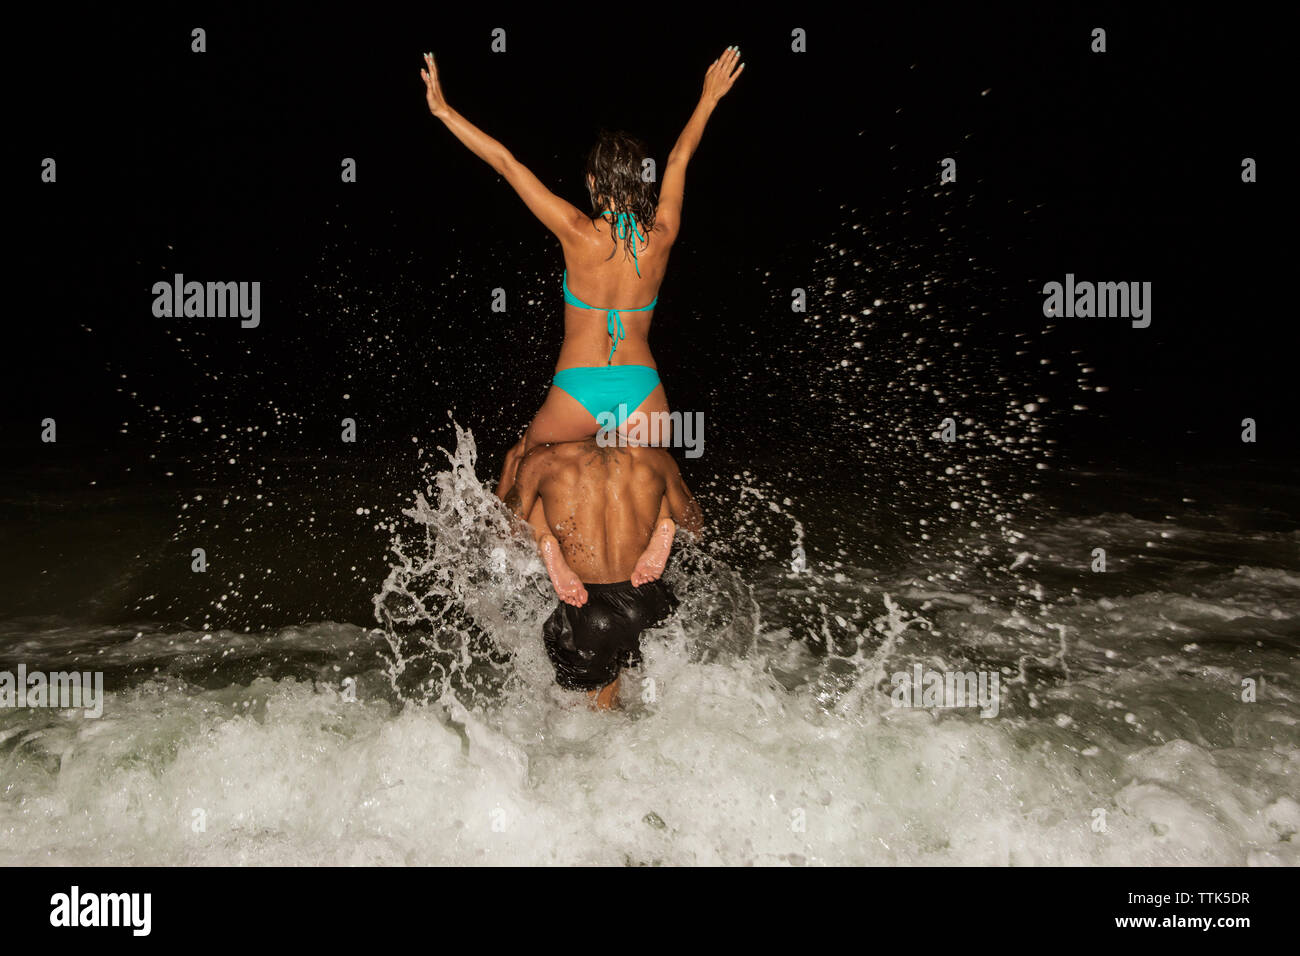 Rear view of man carrying woman on shoulders in sea at night - Stock Image